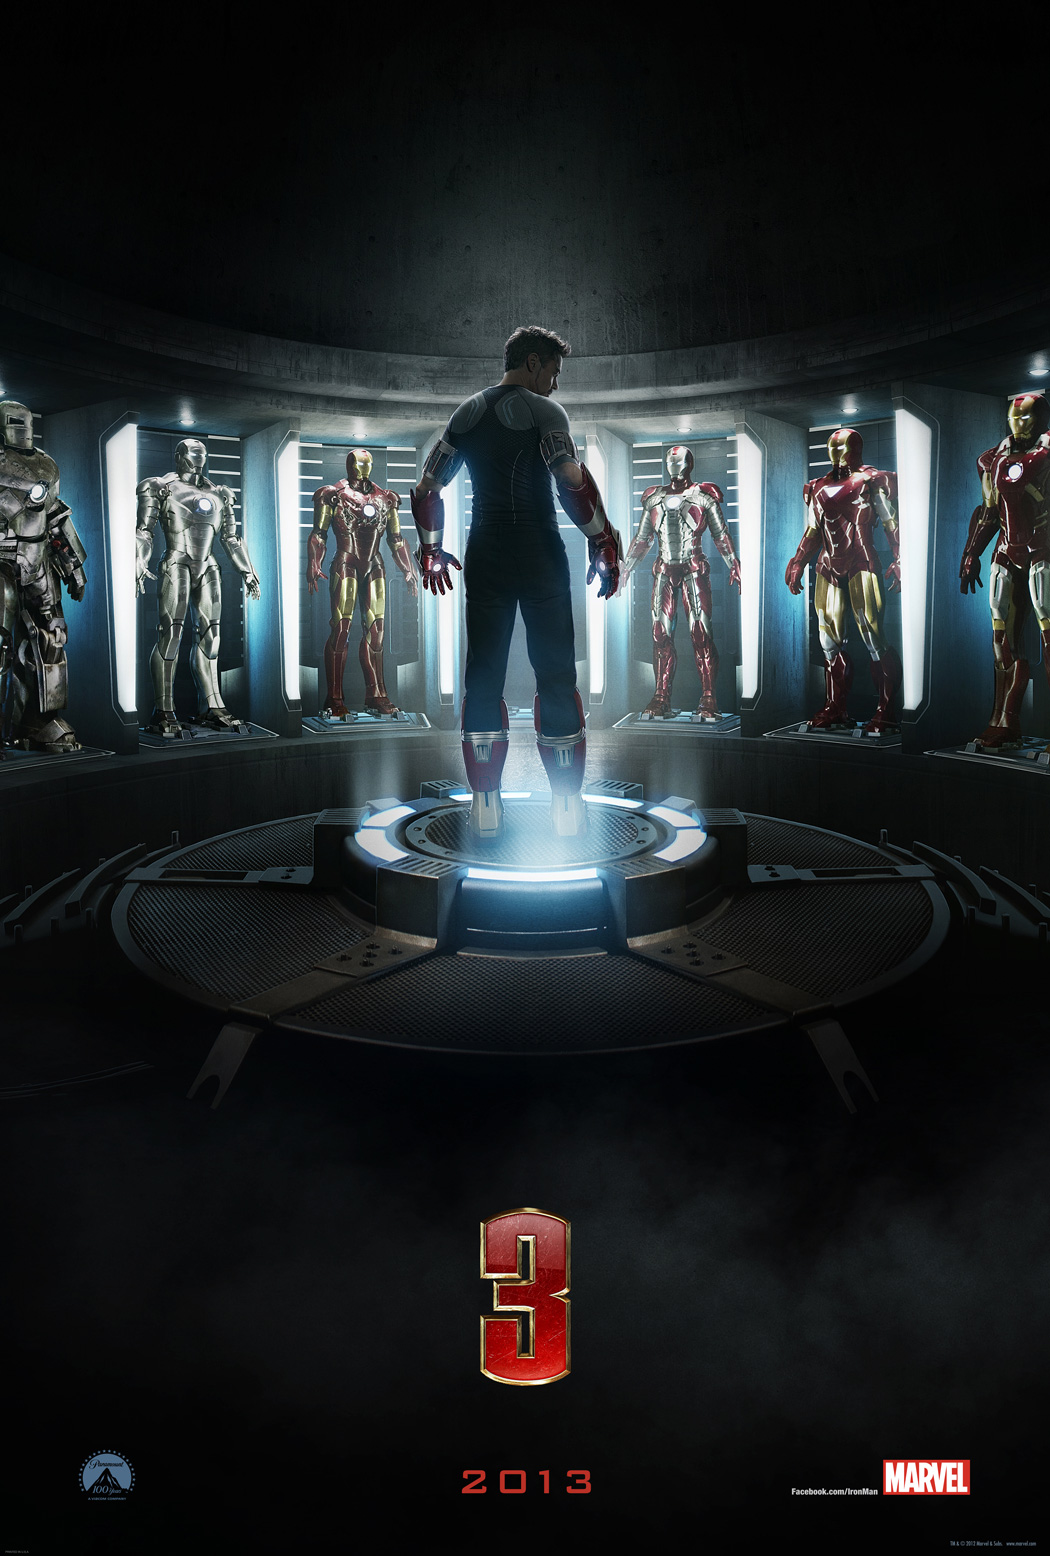 Affiche teaser officielle du film Iron Man 3. Sortie le 1er mai 2013 en france. Tony Stark, Robert Downey Jr.